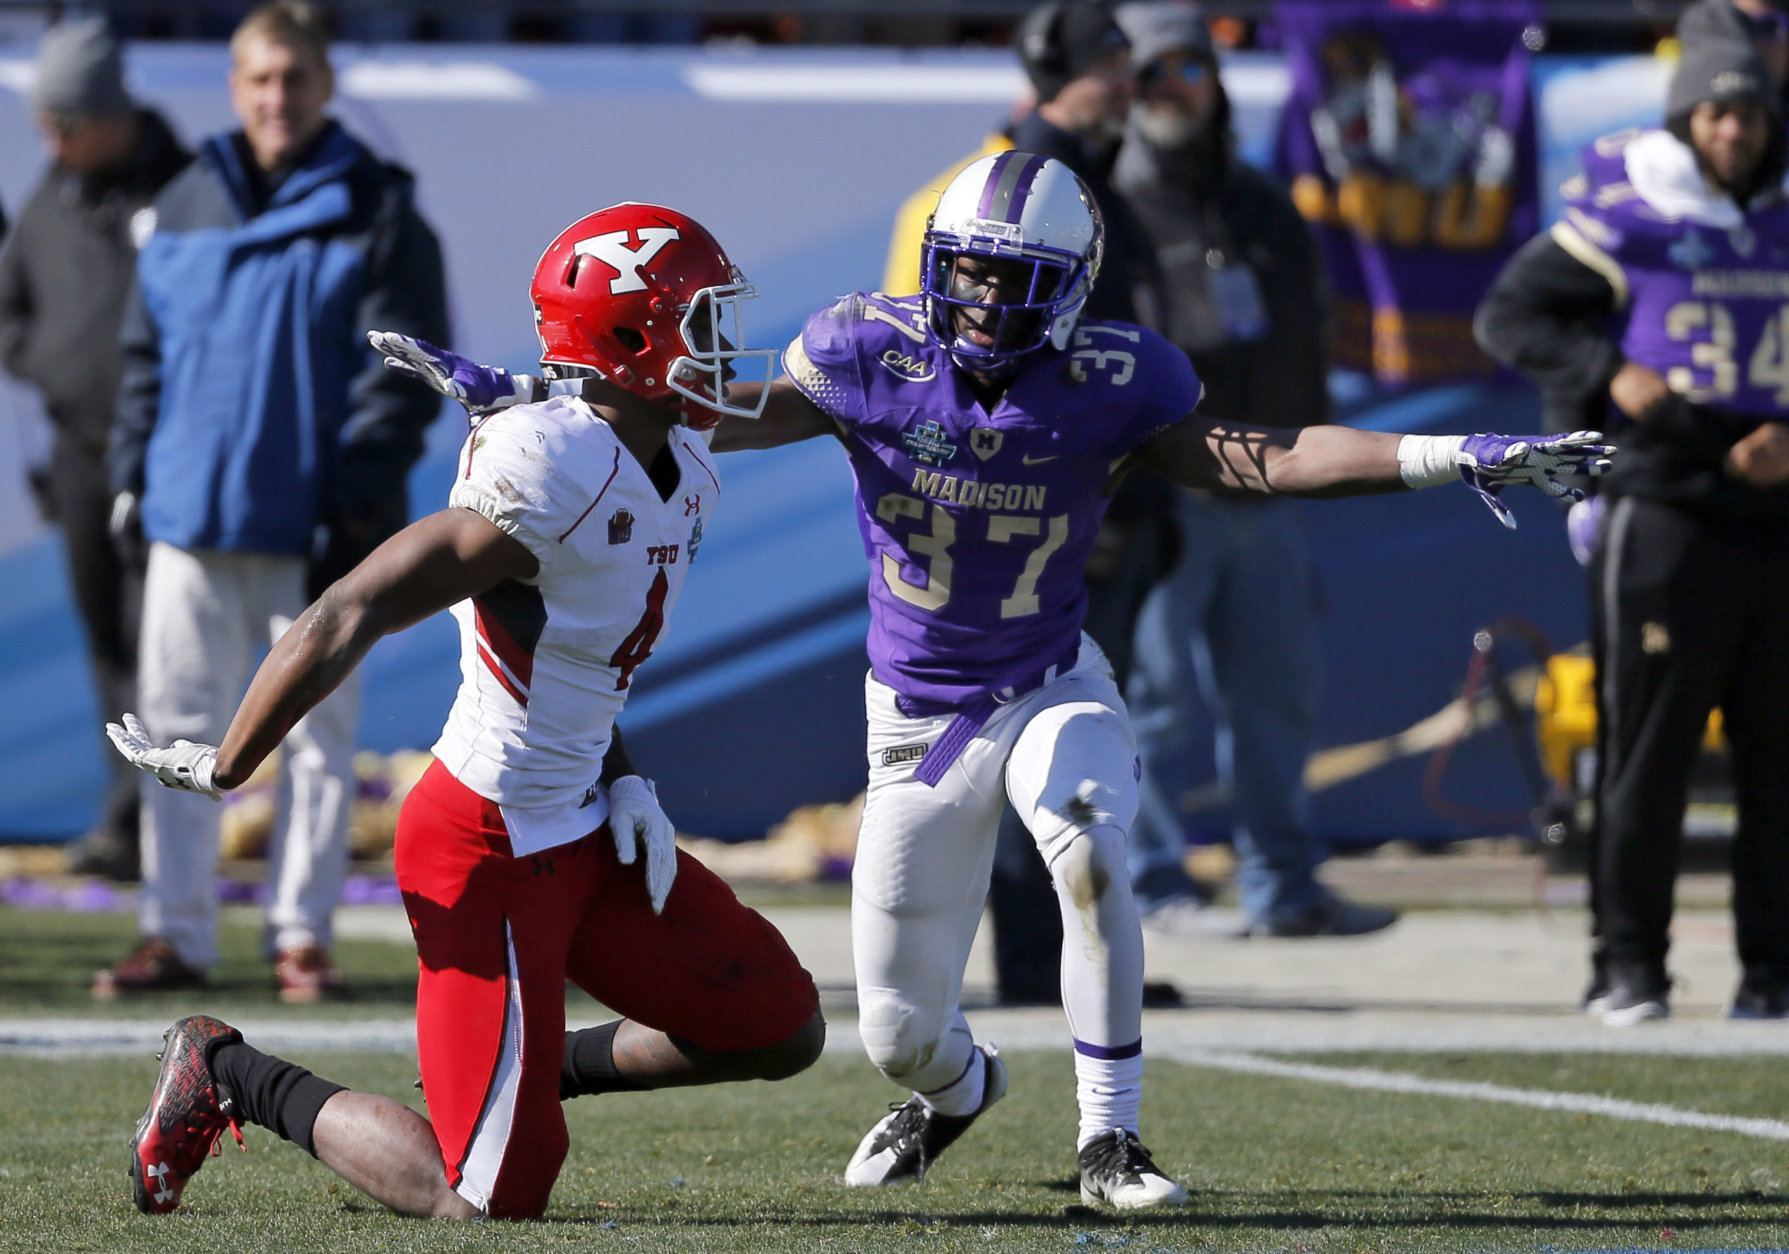 James Madison cornerback Jimmy Moreland (37) celebrates after breaking up a pass intended for Youngstown State wide receiver Damoun Patterson (4) in the first half of the FCS championship NCAA college football game, Saturday, Jan. 7, 2017, in Frisco, Texas. (AP Photo/Tony Gutierrez)